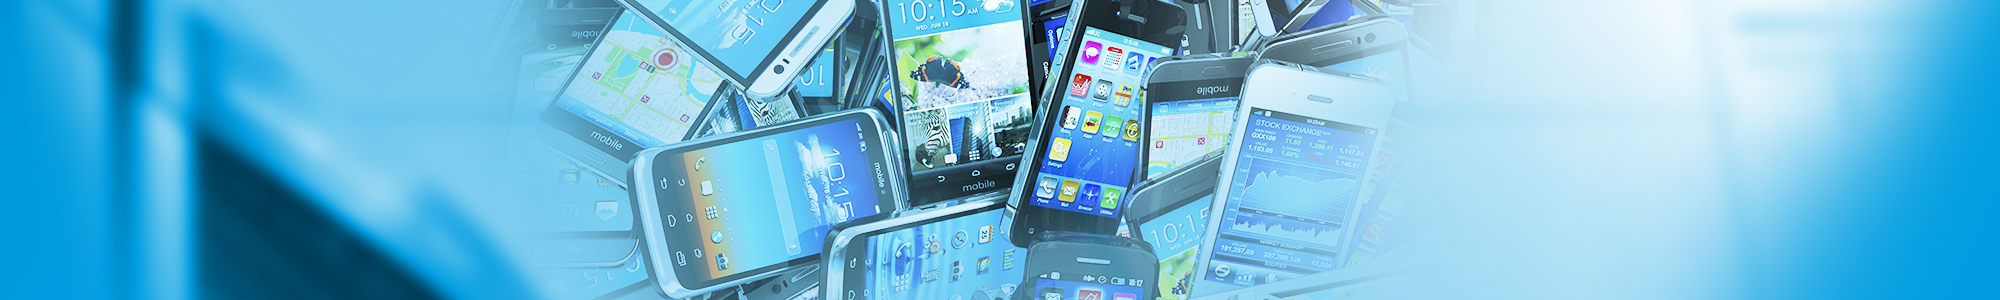 Mobile Phone Recycling / Mobile Device Recycling By EOL IT Services